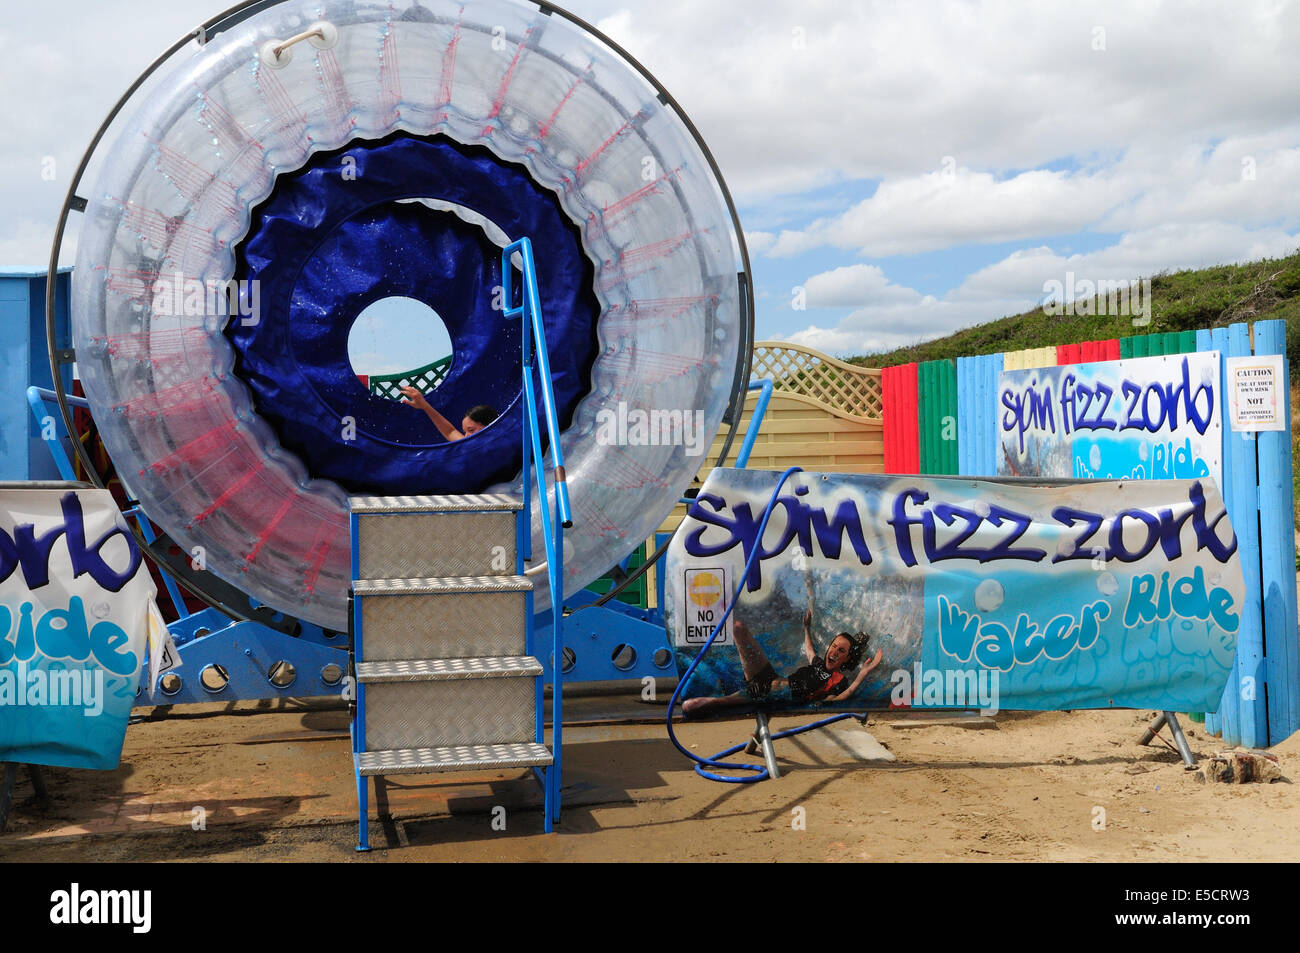 Spin fizz zorb  water ride Pembrey Country Park Carmarthenshire - Stock Image